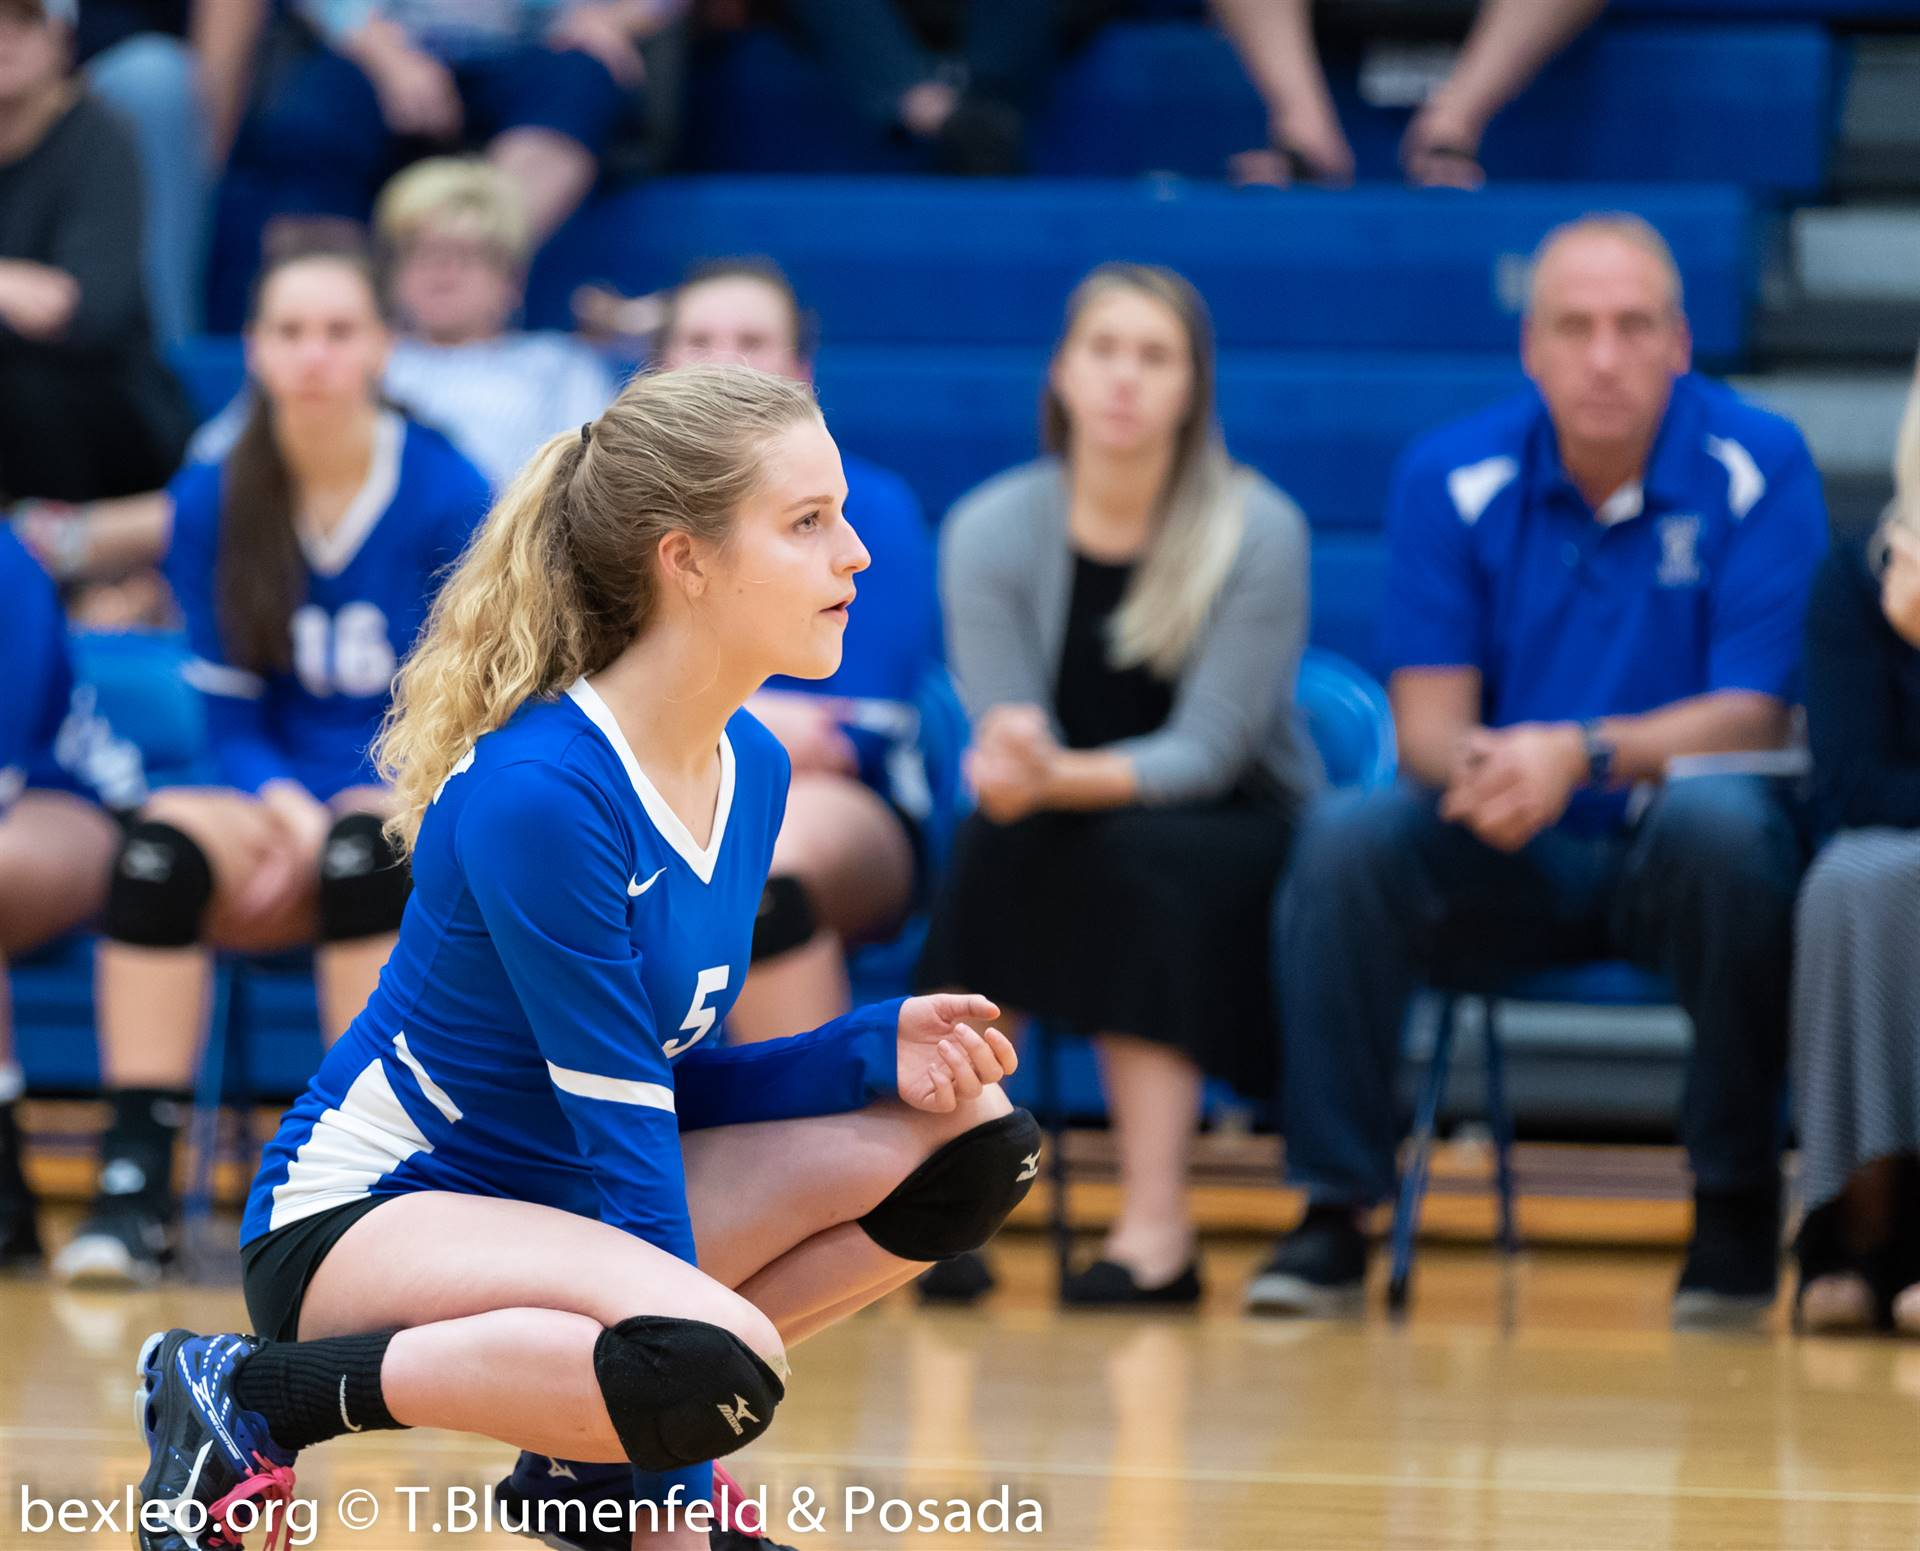 Volleyball crouching to receive a serve